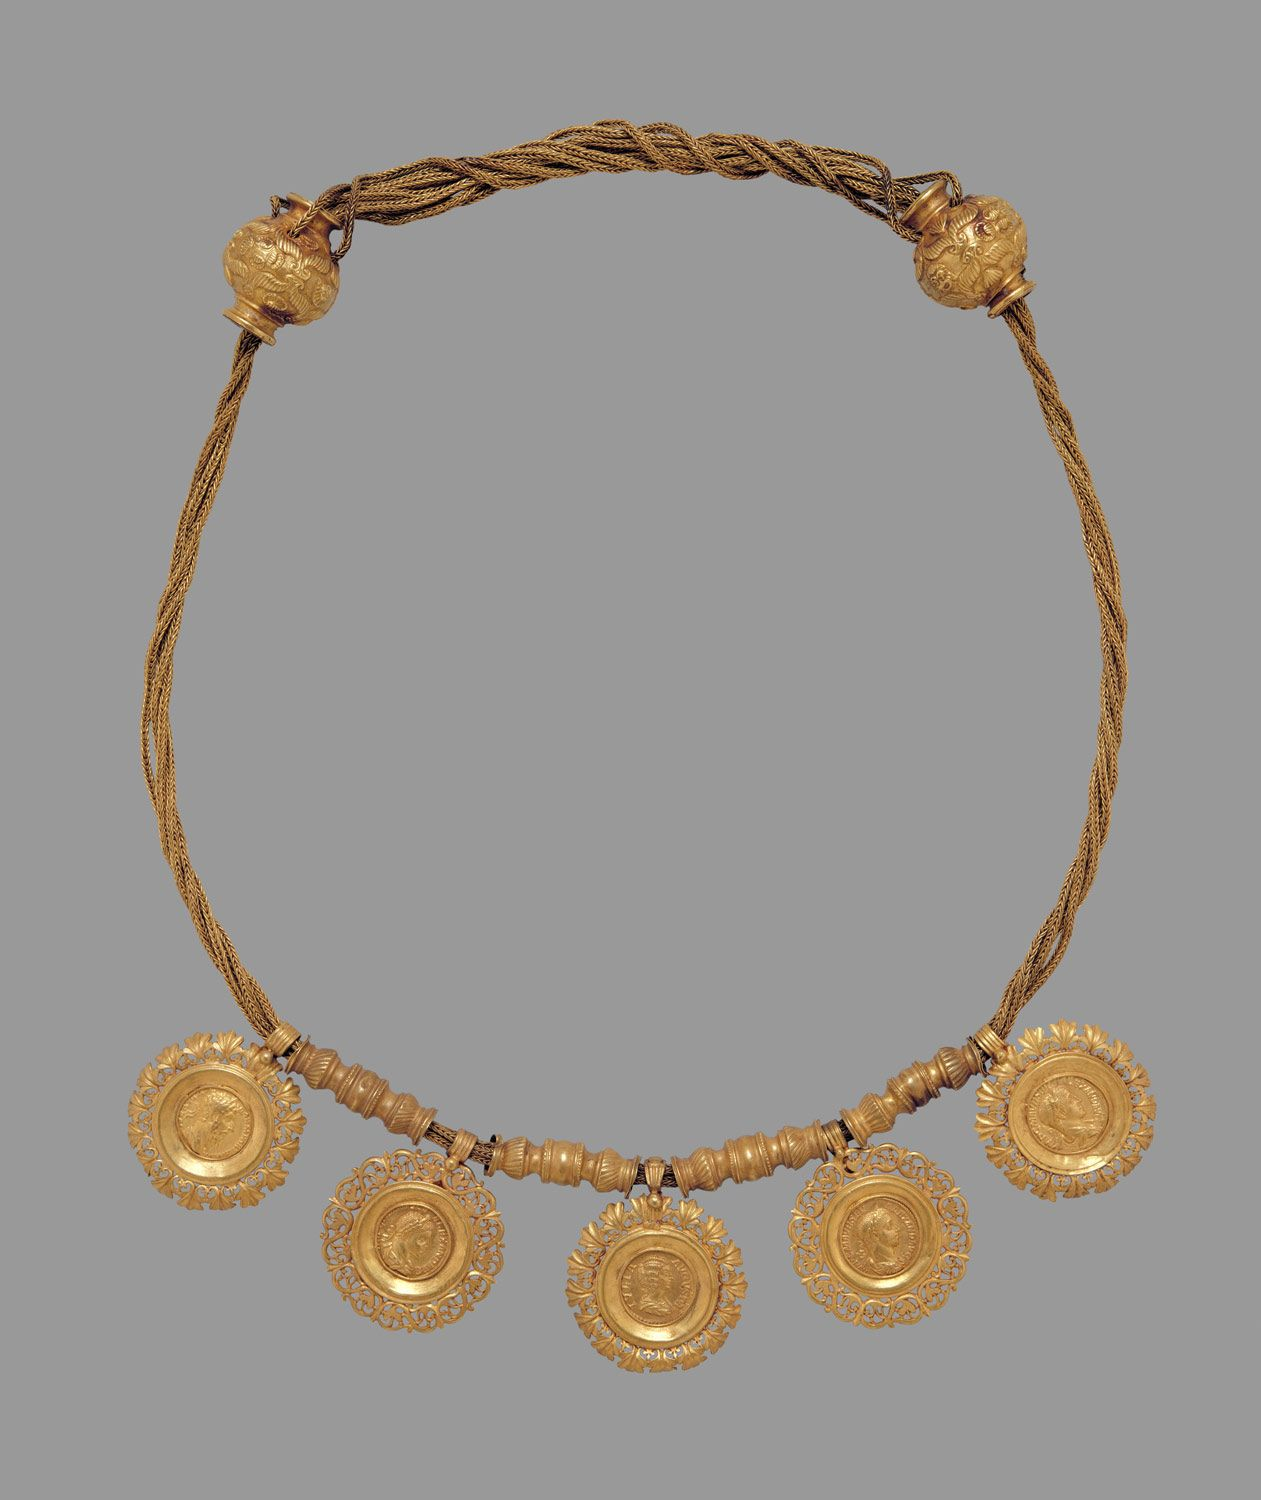 Collar with medallions containing coins of emperors